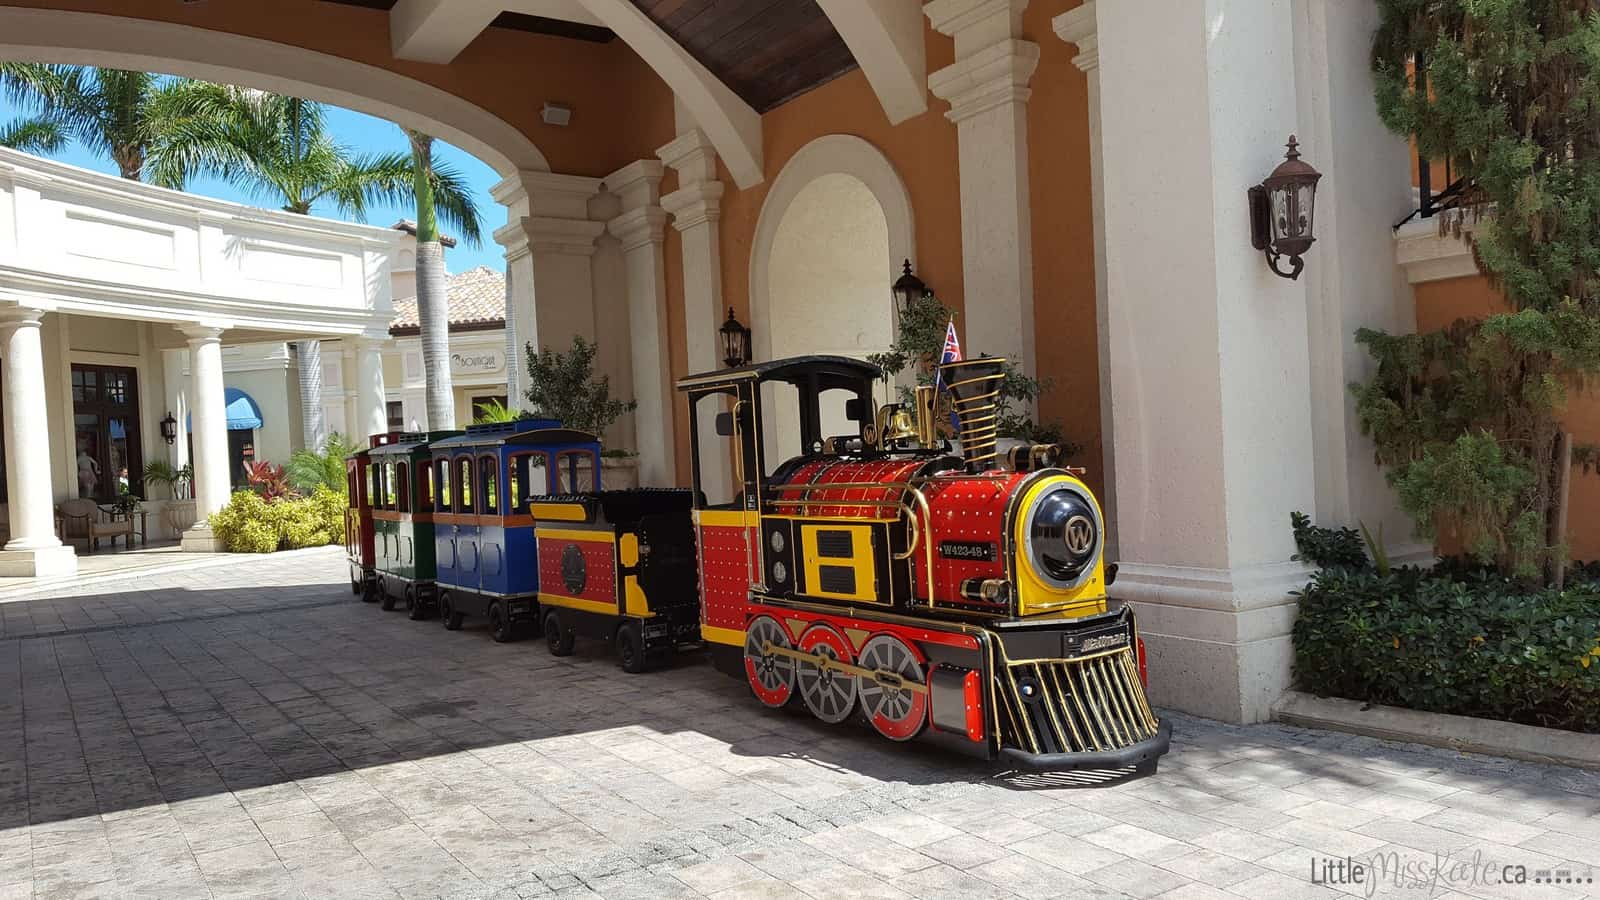 beaches turks and caicos review train ride